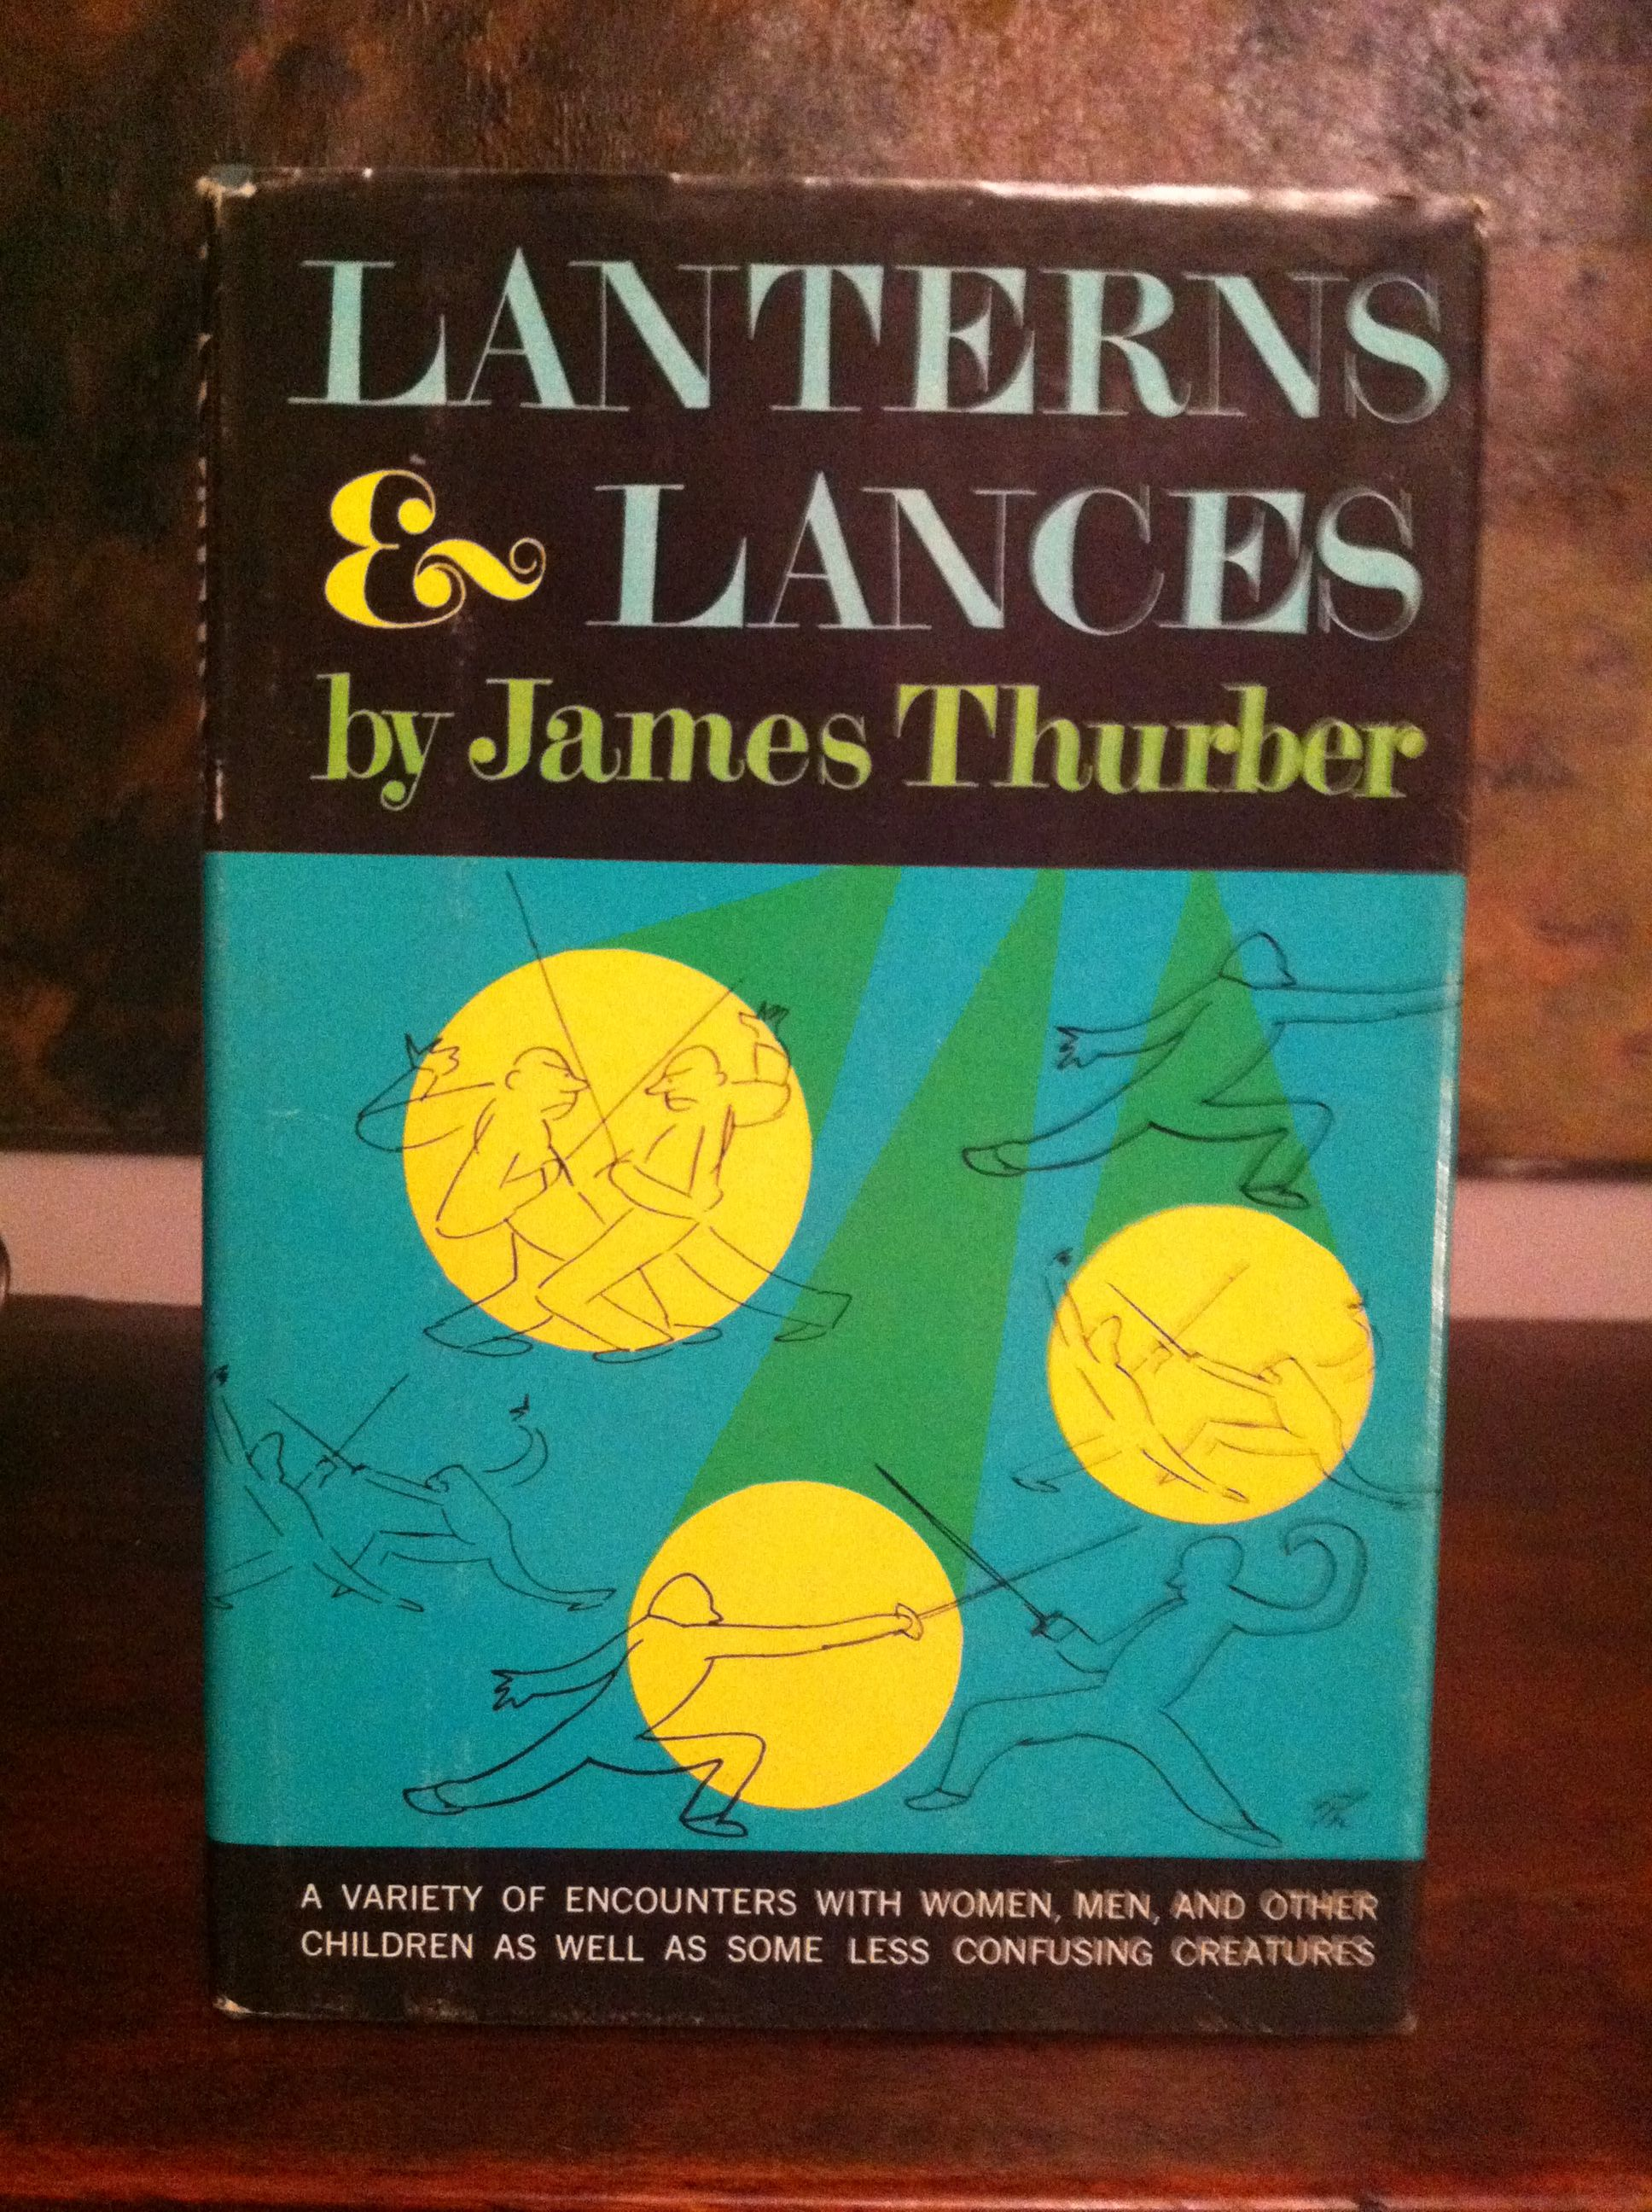 Love books - Lanterns and Lances by James Thurber